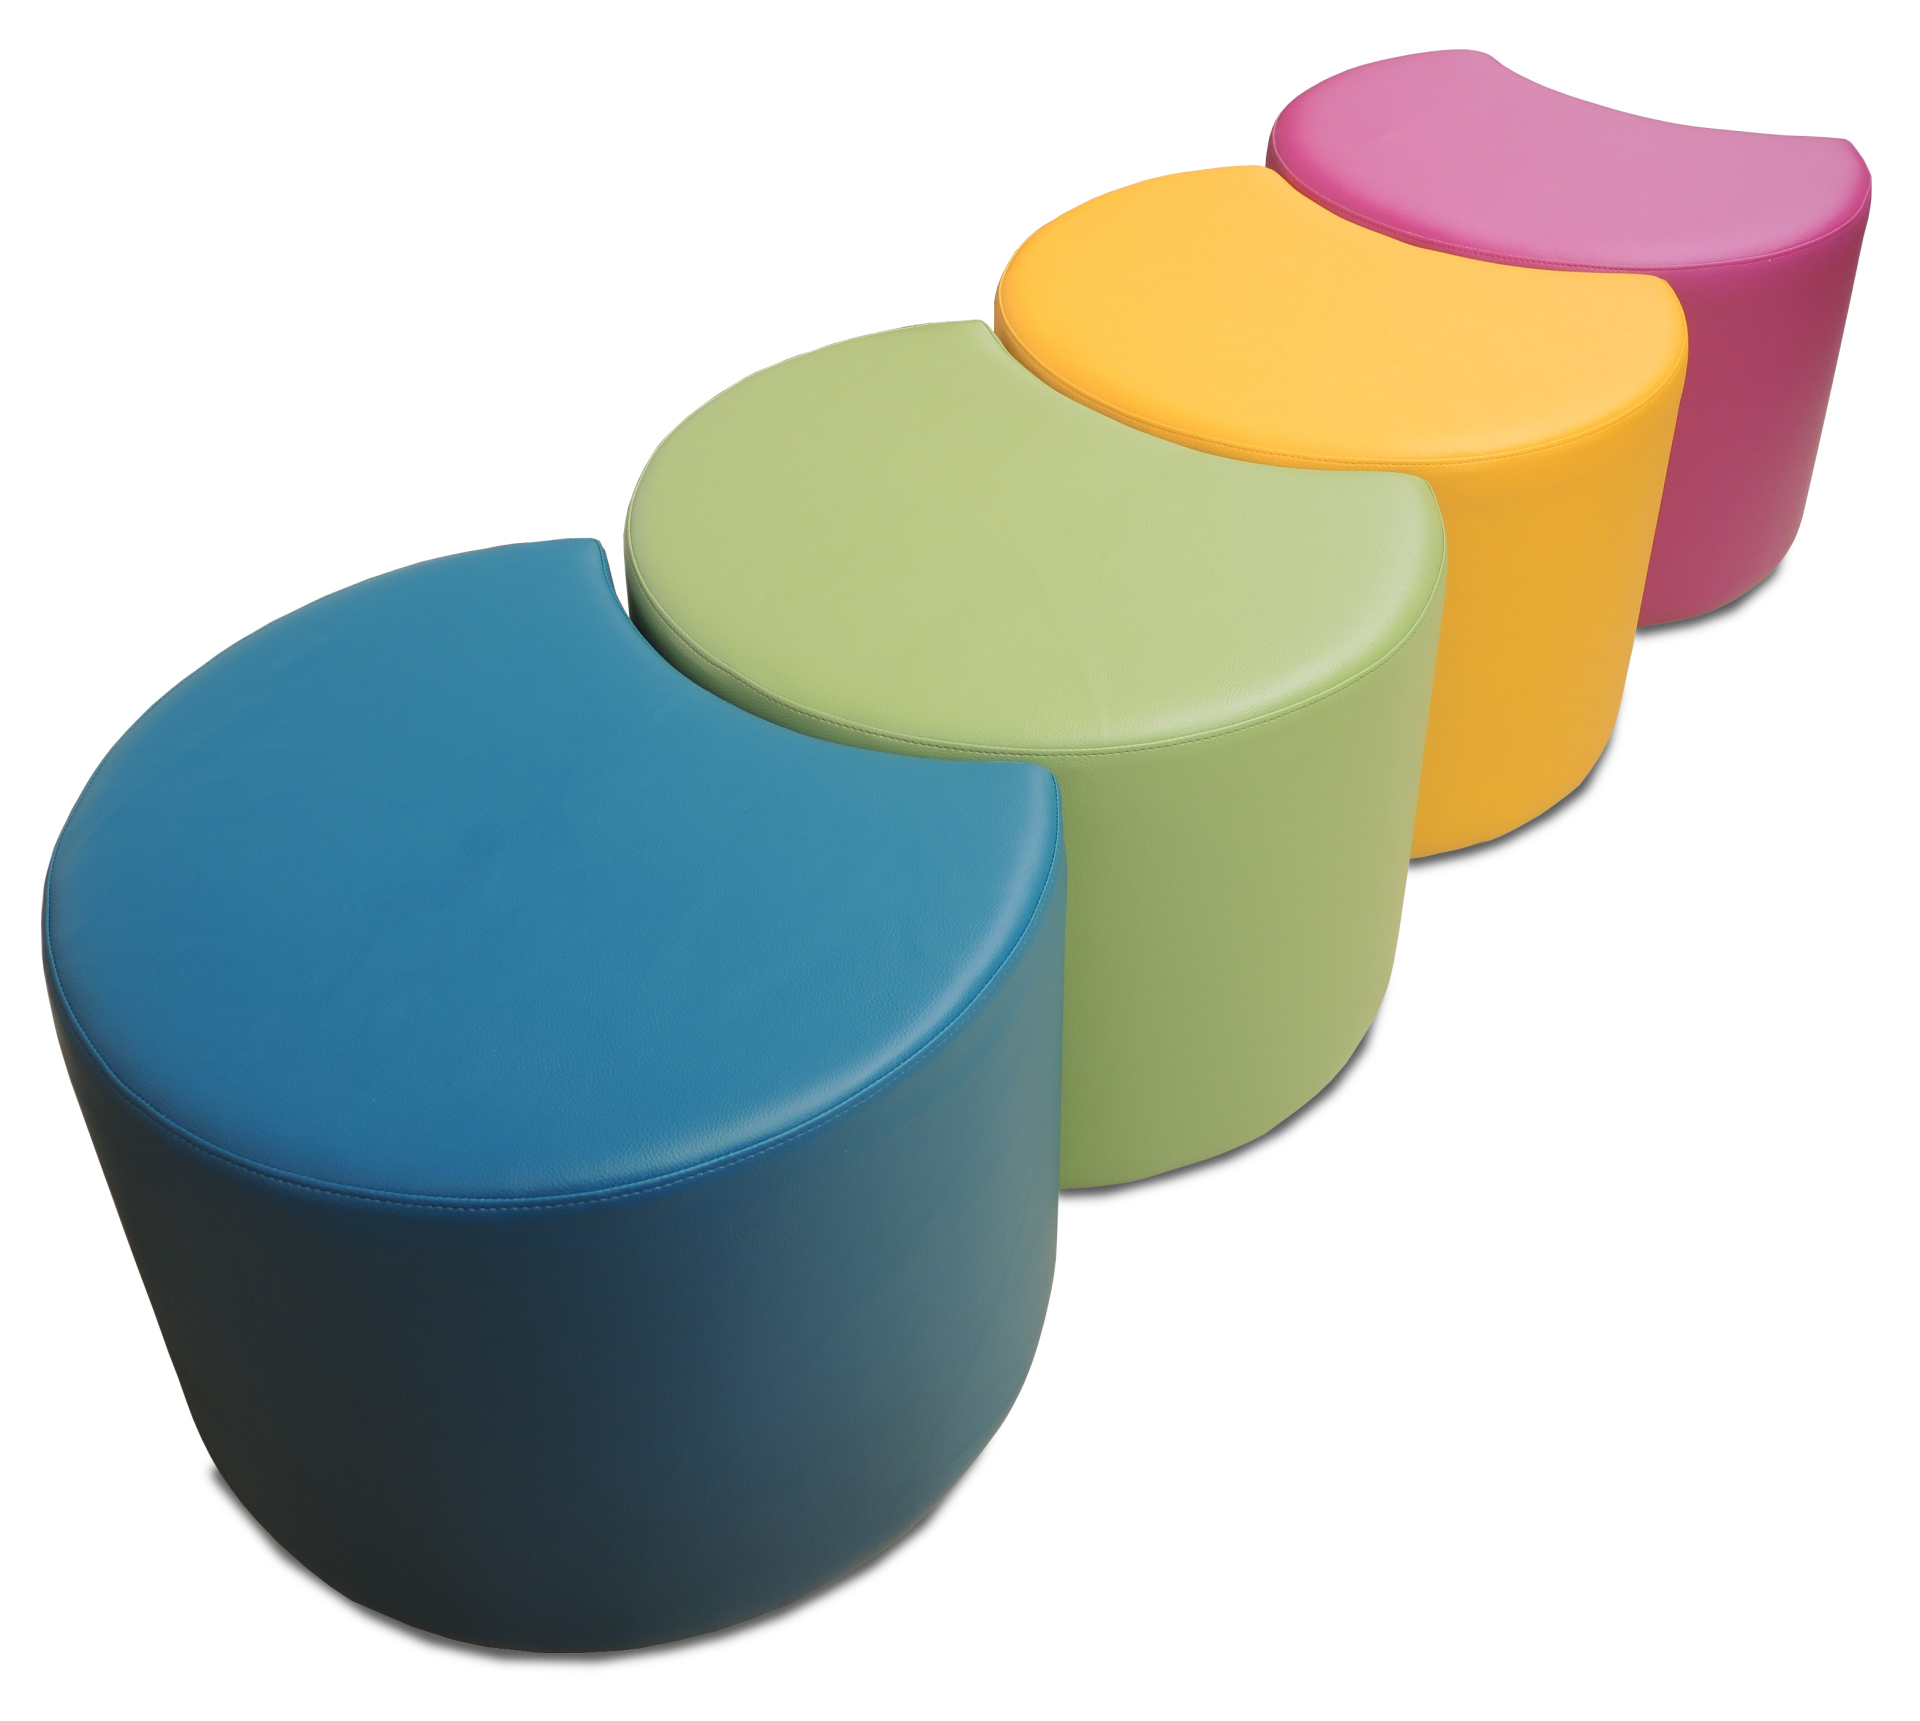 Direct Ergonomics   Sydney Office Furniture   Ergonomic Furniture   Collaborative Seating   Waiting Lounges   Waiting Room Seating   Ergonomic Seating   Learning Space Seating   Library Seating   Ottoman